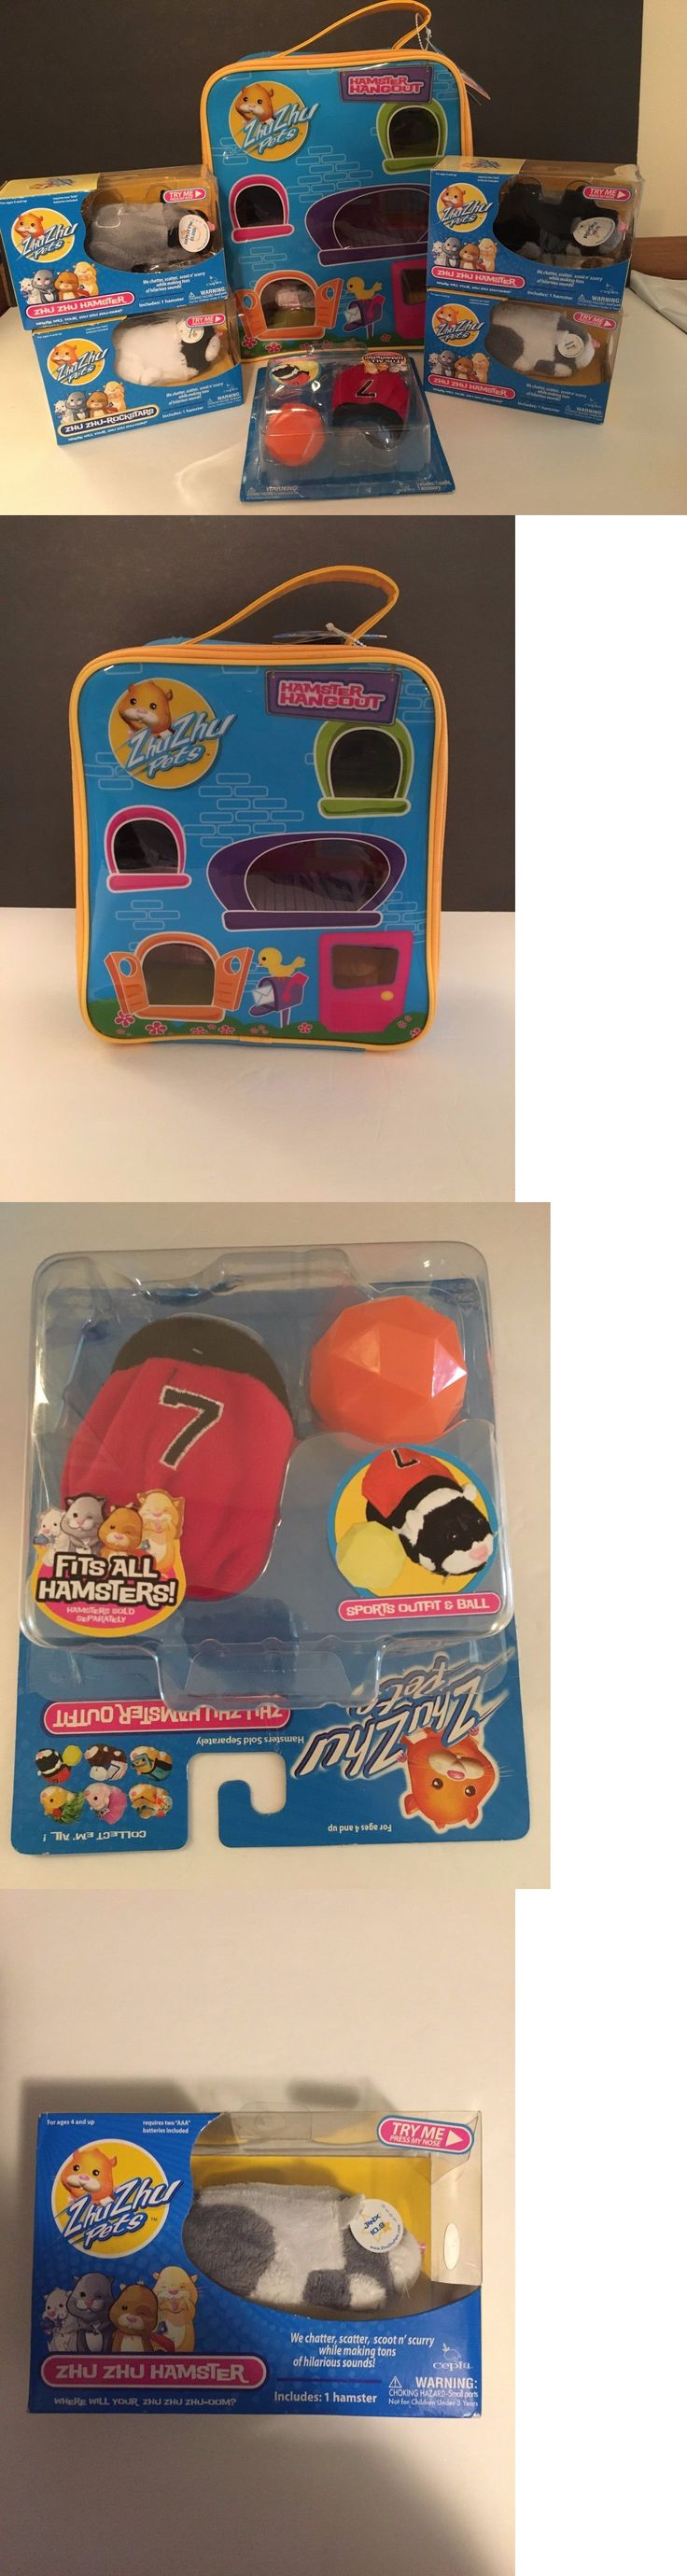 Zhu Zhu Pets 171529: Zhu Zhu Pets Lot Hamster Hangout Case Nwt 1 Outfit And 4 Hamsters New In Box -> BUY IT NOW ONLY: $30 on eBay!